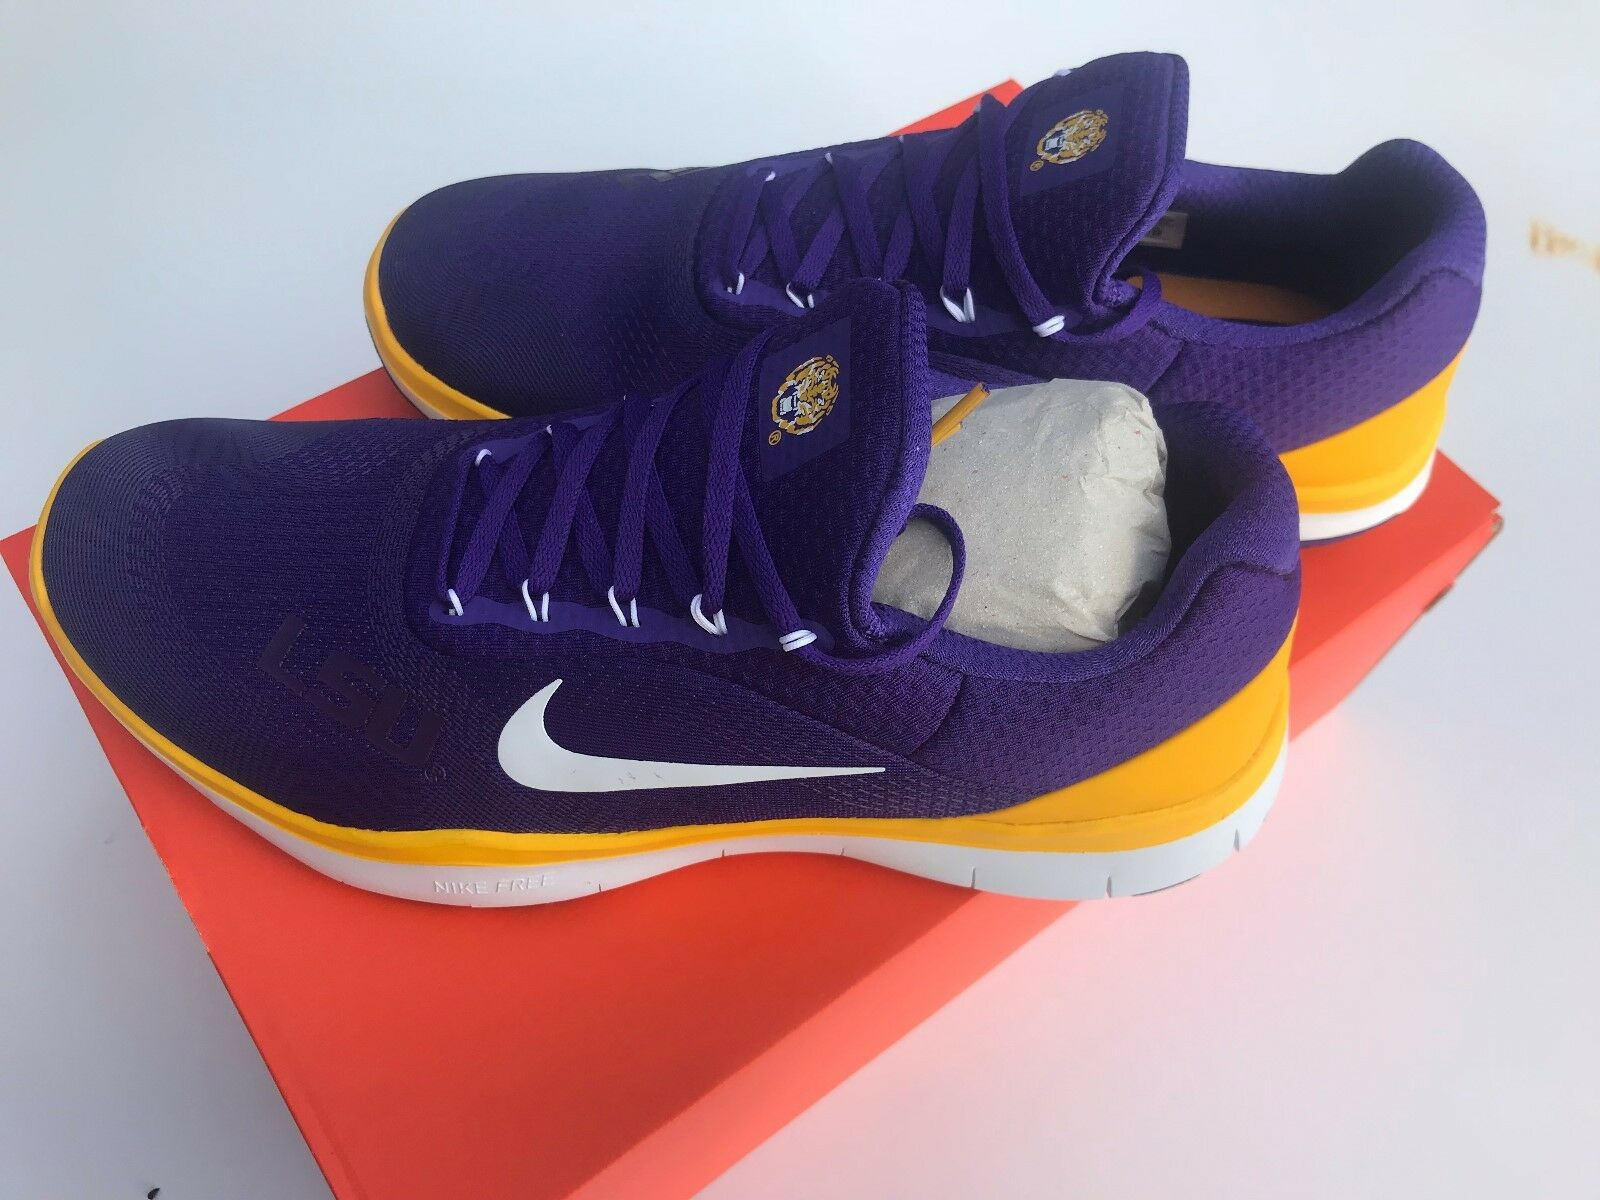 Men's Nike Free Trainer V7 LSU Tigers Shoes Sneakers New NIB Athletic  Cheap and beautiful fashion